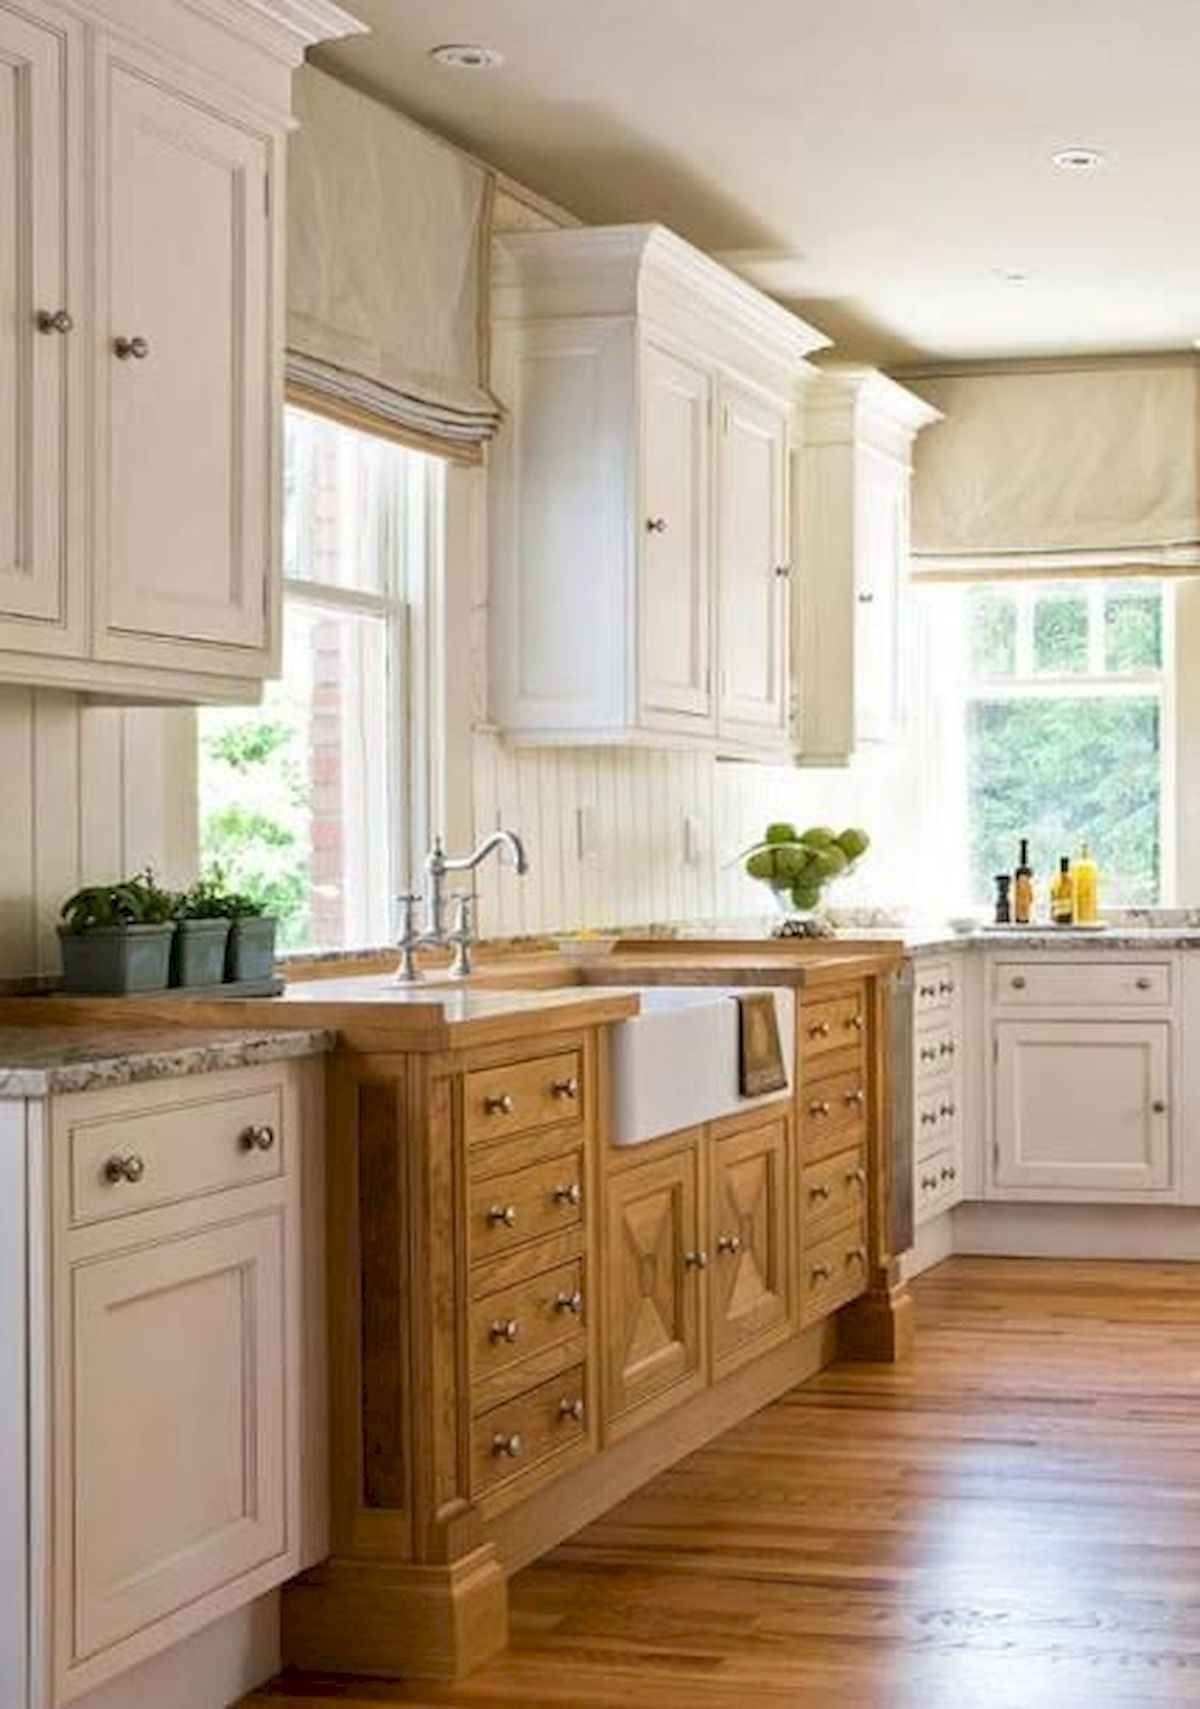 Freestanding kitchen cabinet  sc 1 st  Foter & Freestanding Cabinets - Ideas on Foter